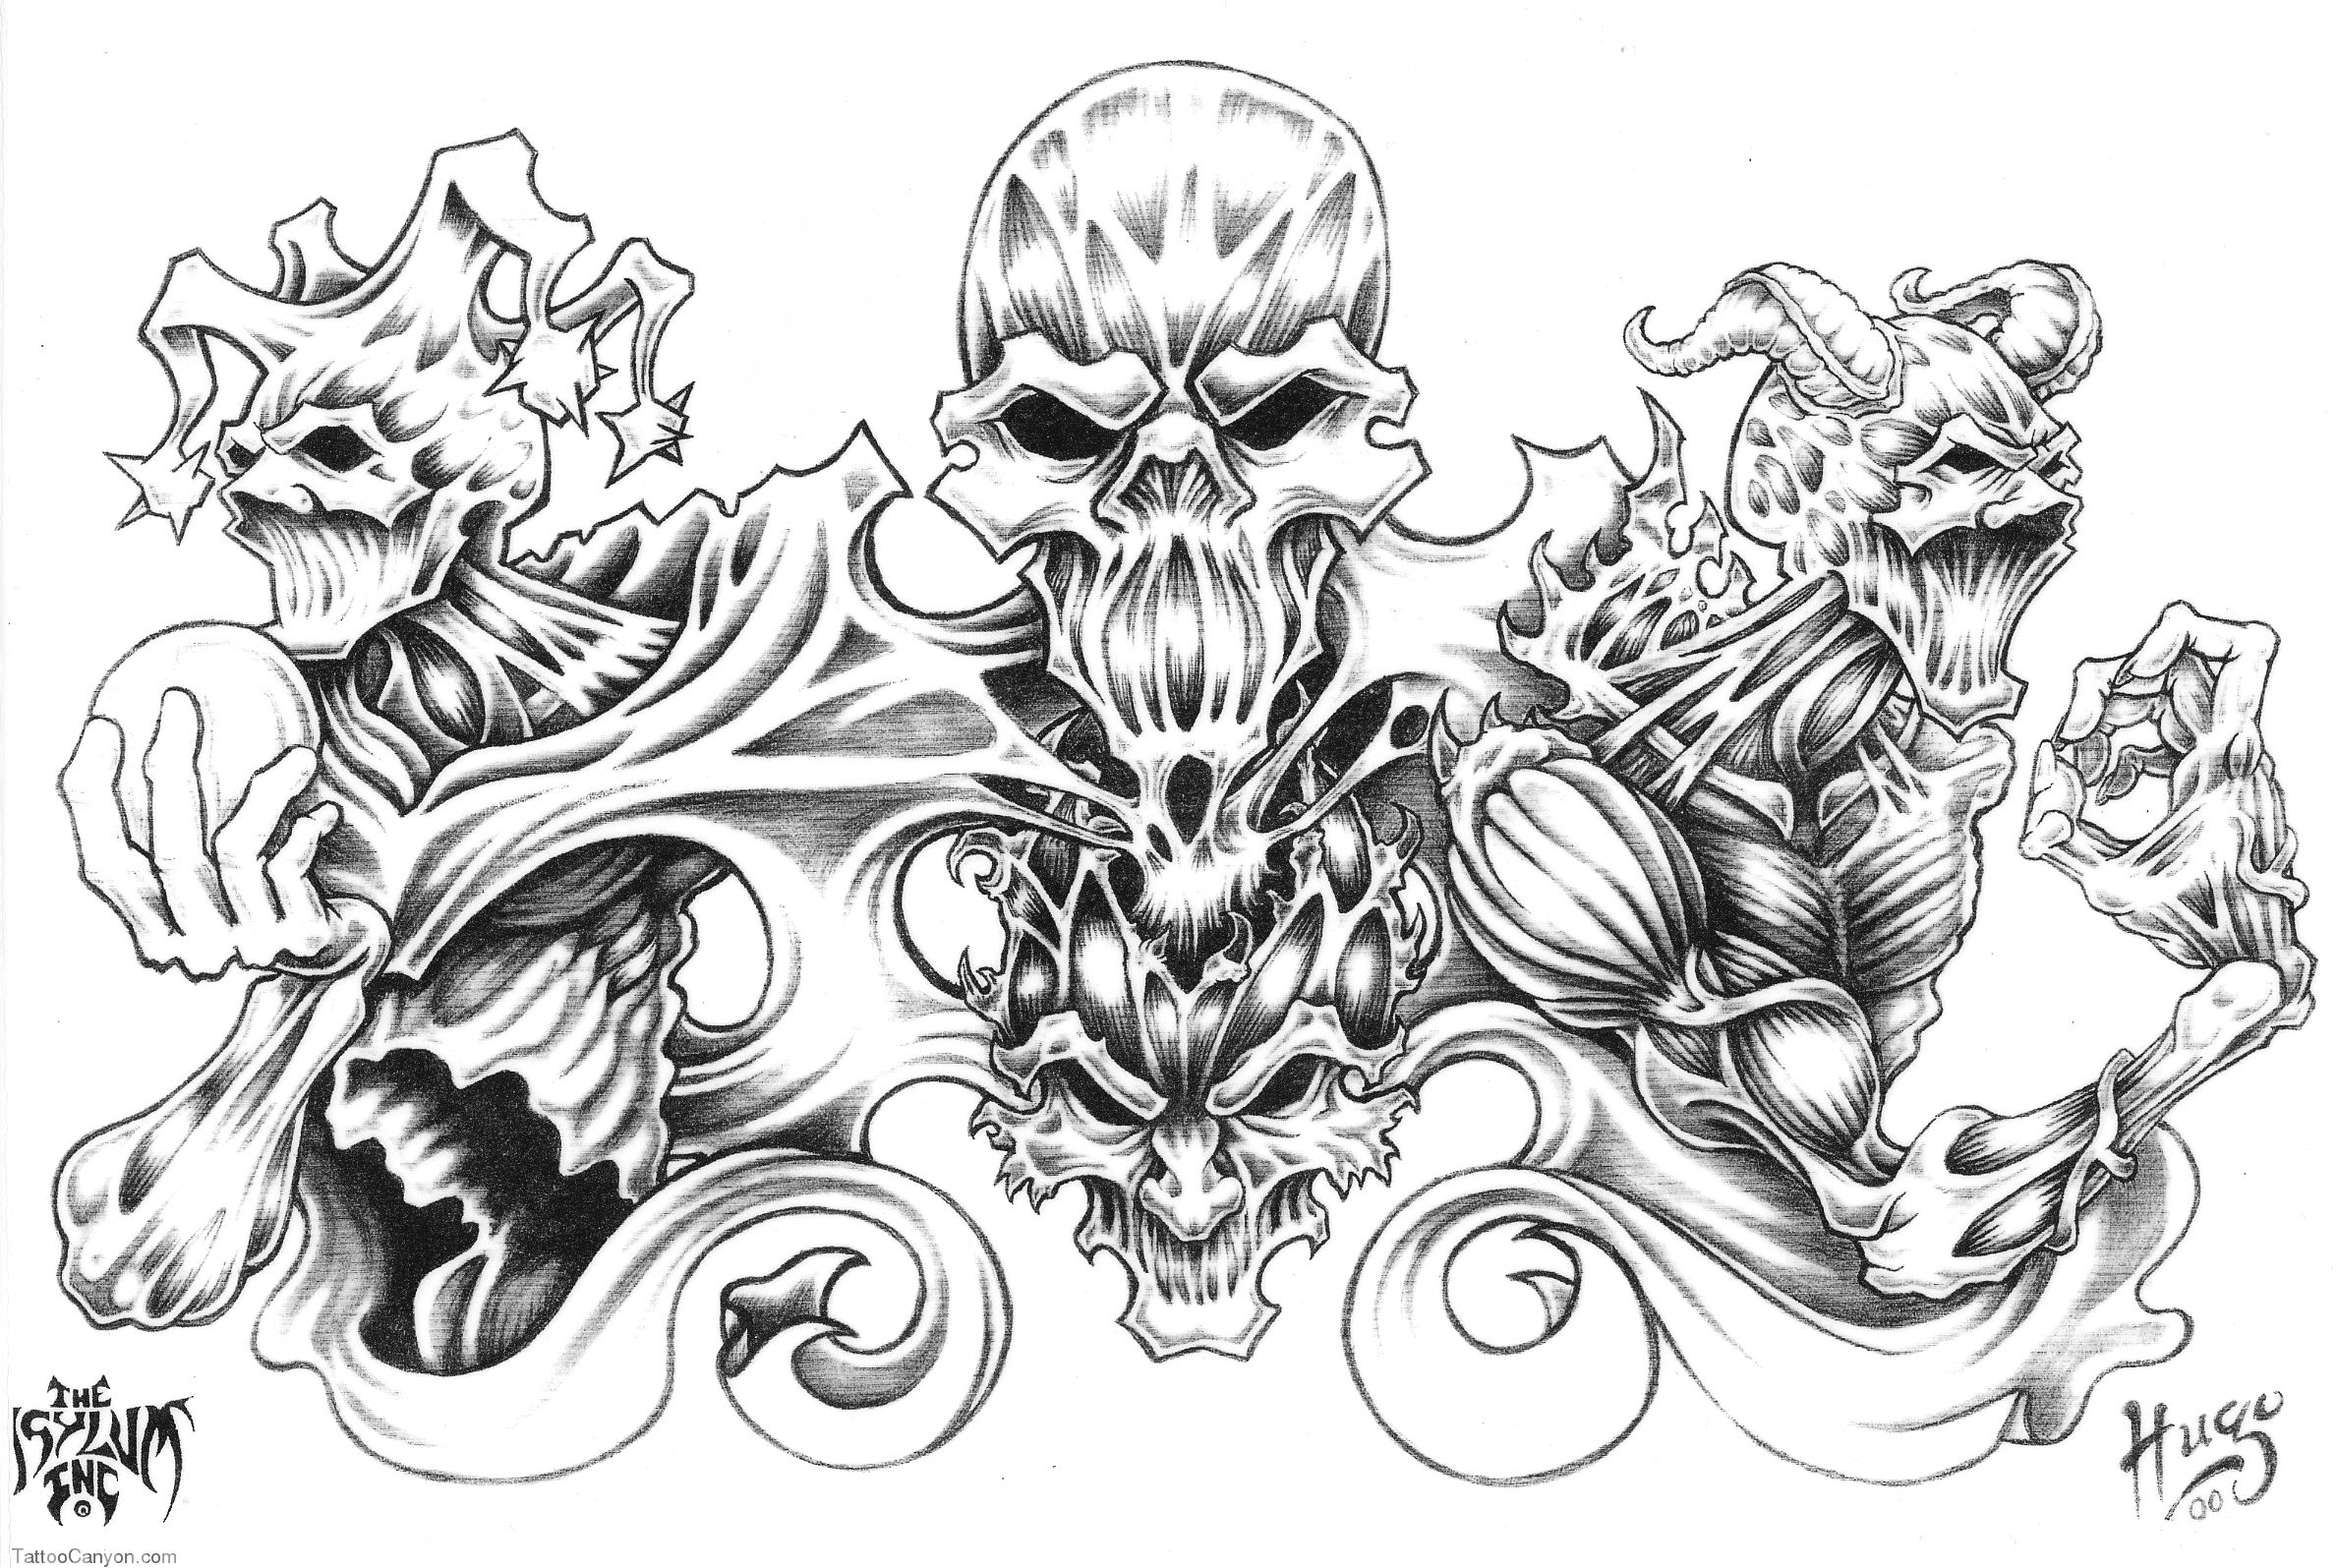 Tattoo Background Designs Demon Tattoo Designs Over